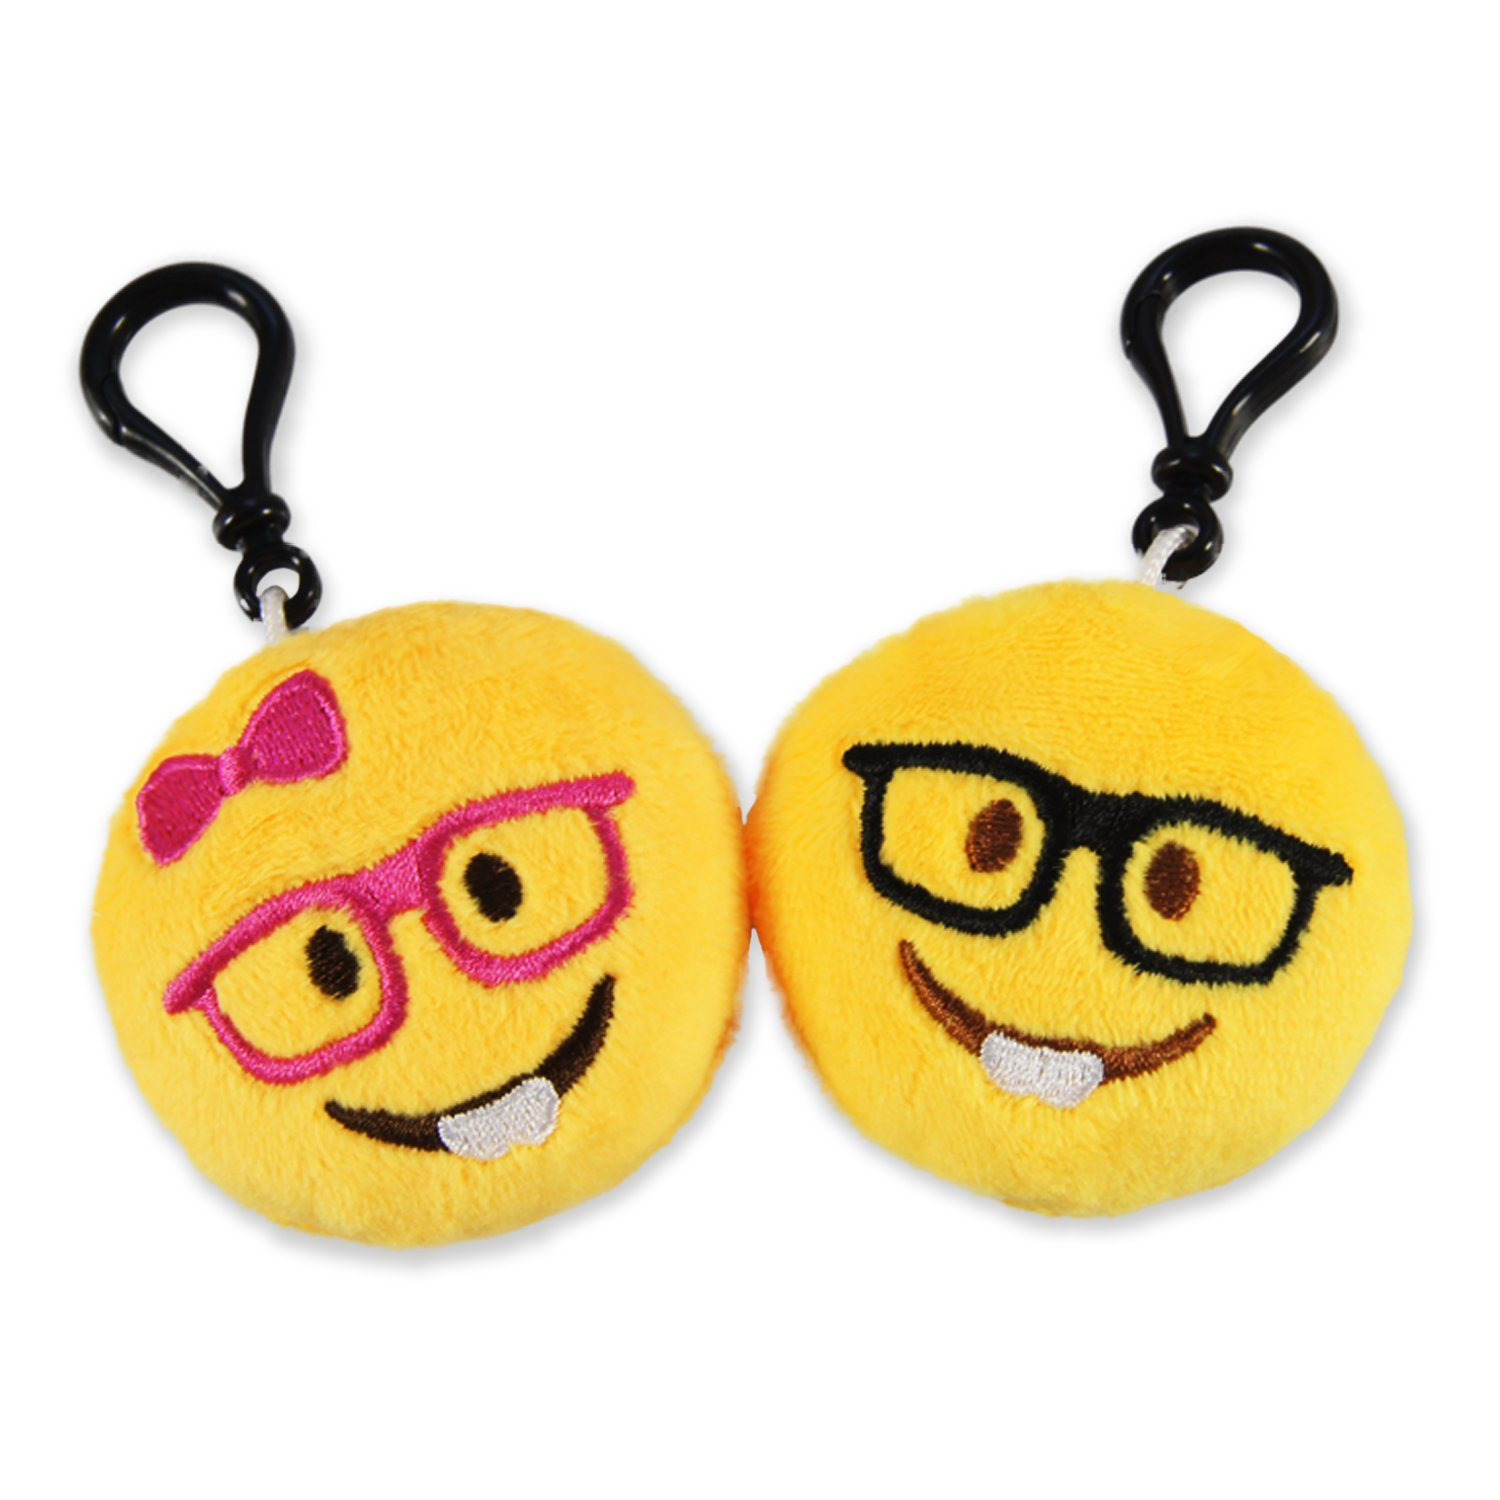 Ivenf Pack of 50 5cm/2'' Emoji Poop Plush Keychain Birthday Party Favors Supplies Mini Pillows Set, Emoticon Backpack Clips, Goodie Bag Stuffers Pinata Fillers Novelty Gifts Toys Prizes for Kids by Ivenf (Image #3)